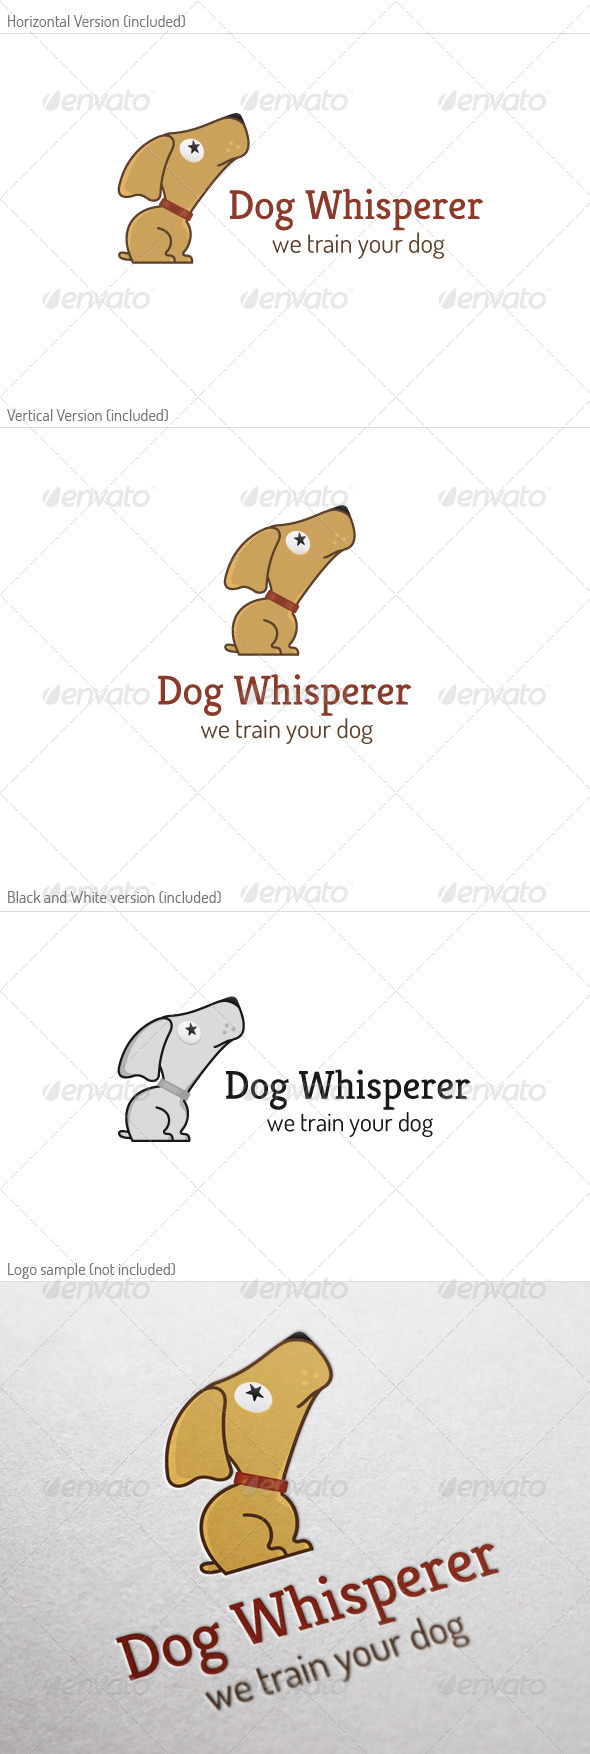 Dog Whisperer Logo